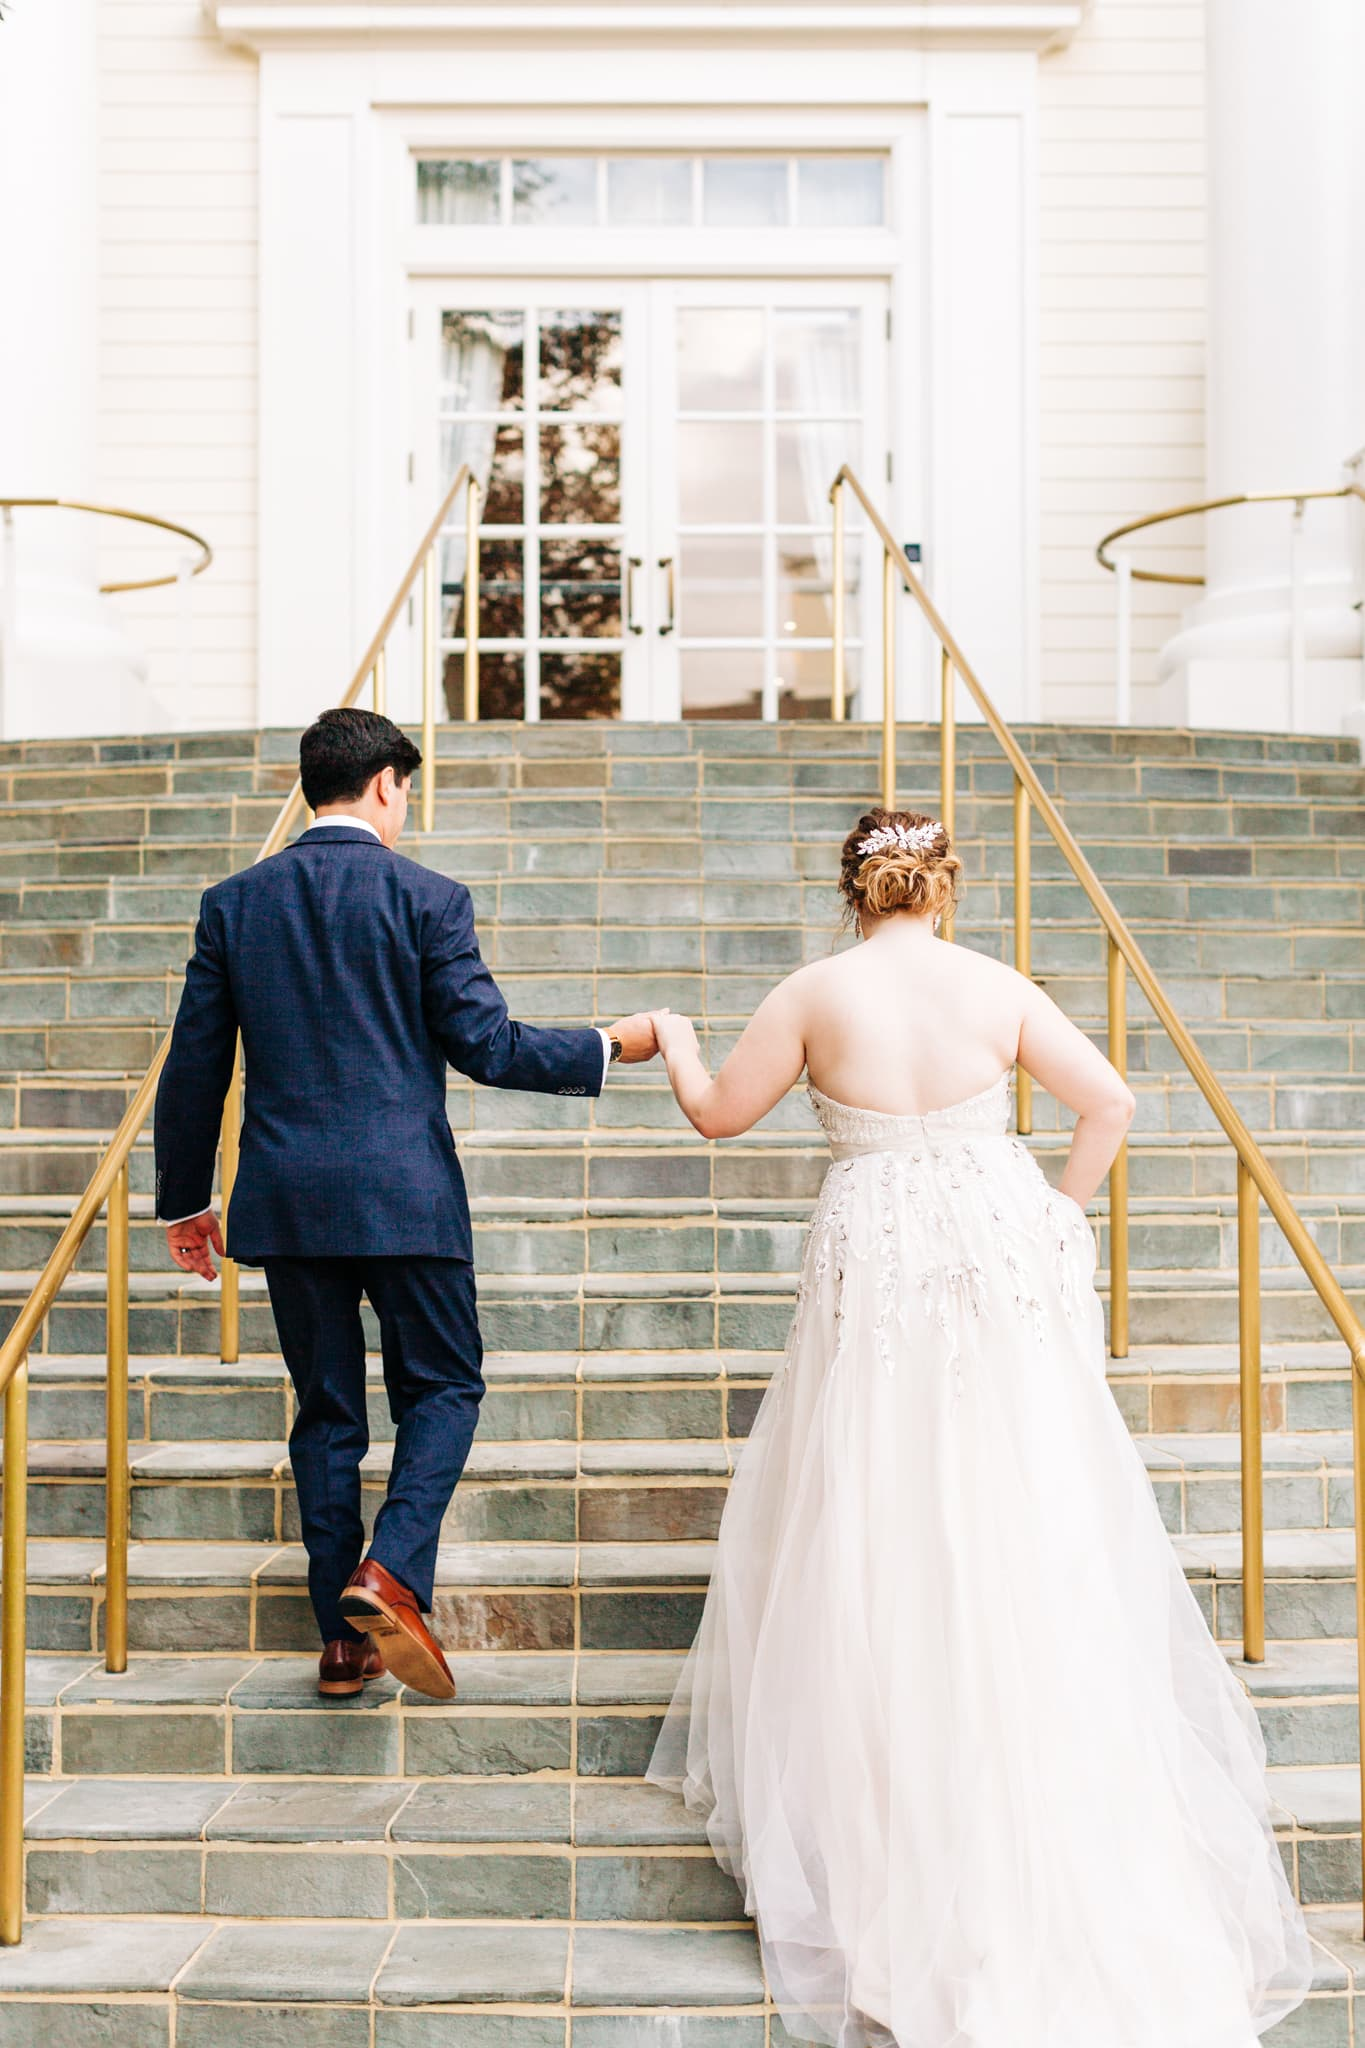 groom leading a bride up the stairs by hand at the Disney boardwalk